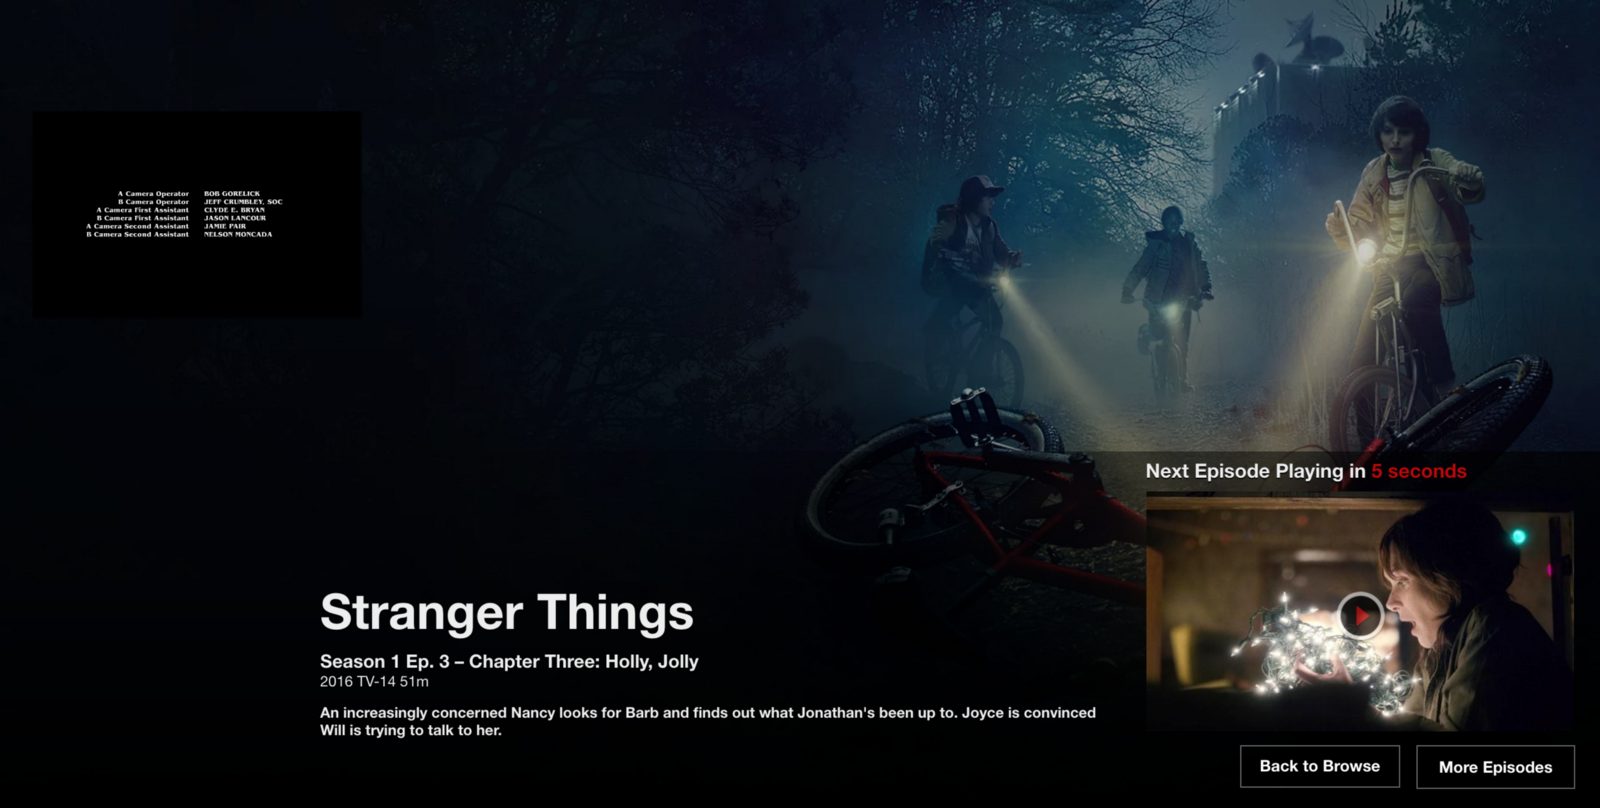 Netflix's next episode auto-play is an example of a nudge to have you continue watching.  Screenshot (featuring Stranger Things), Netflix